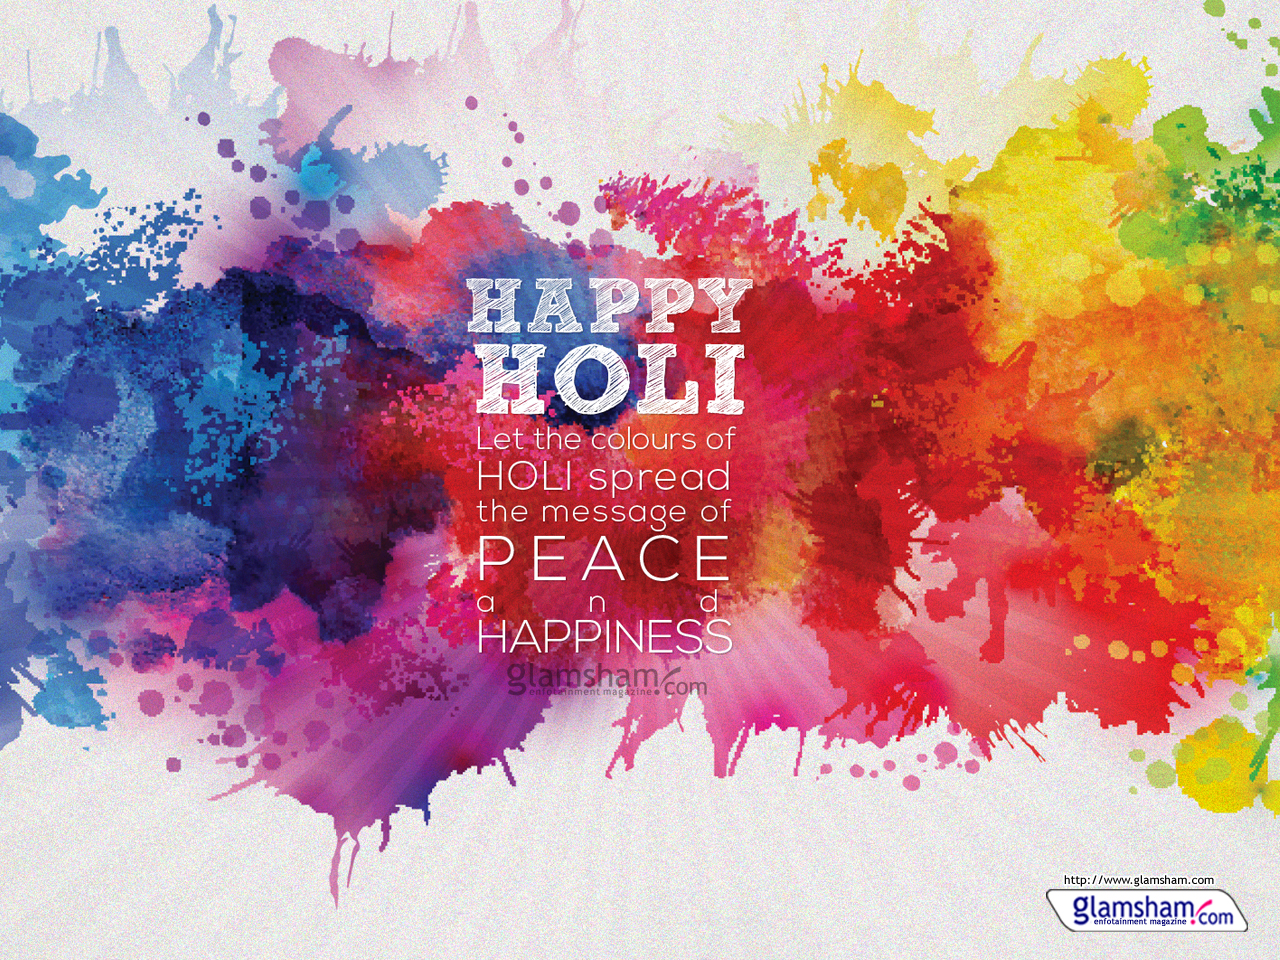 Holi Wallpapers High Resolution CAFJE45   4USkY 1280x960